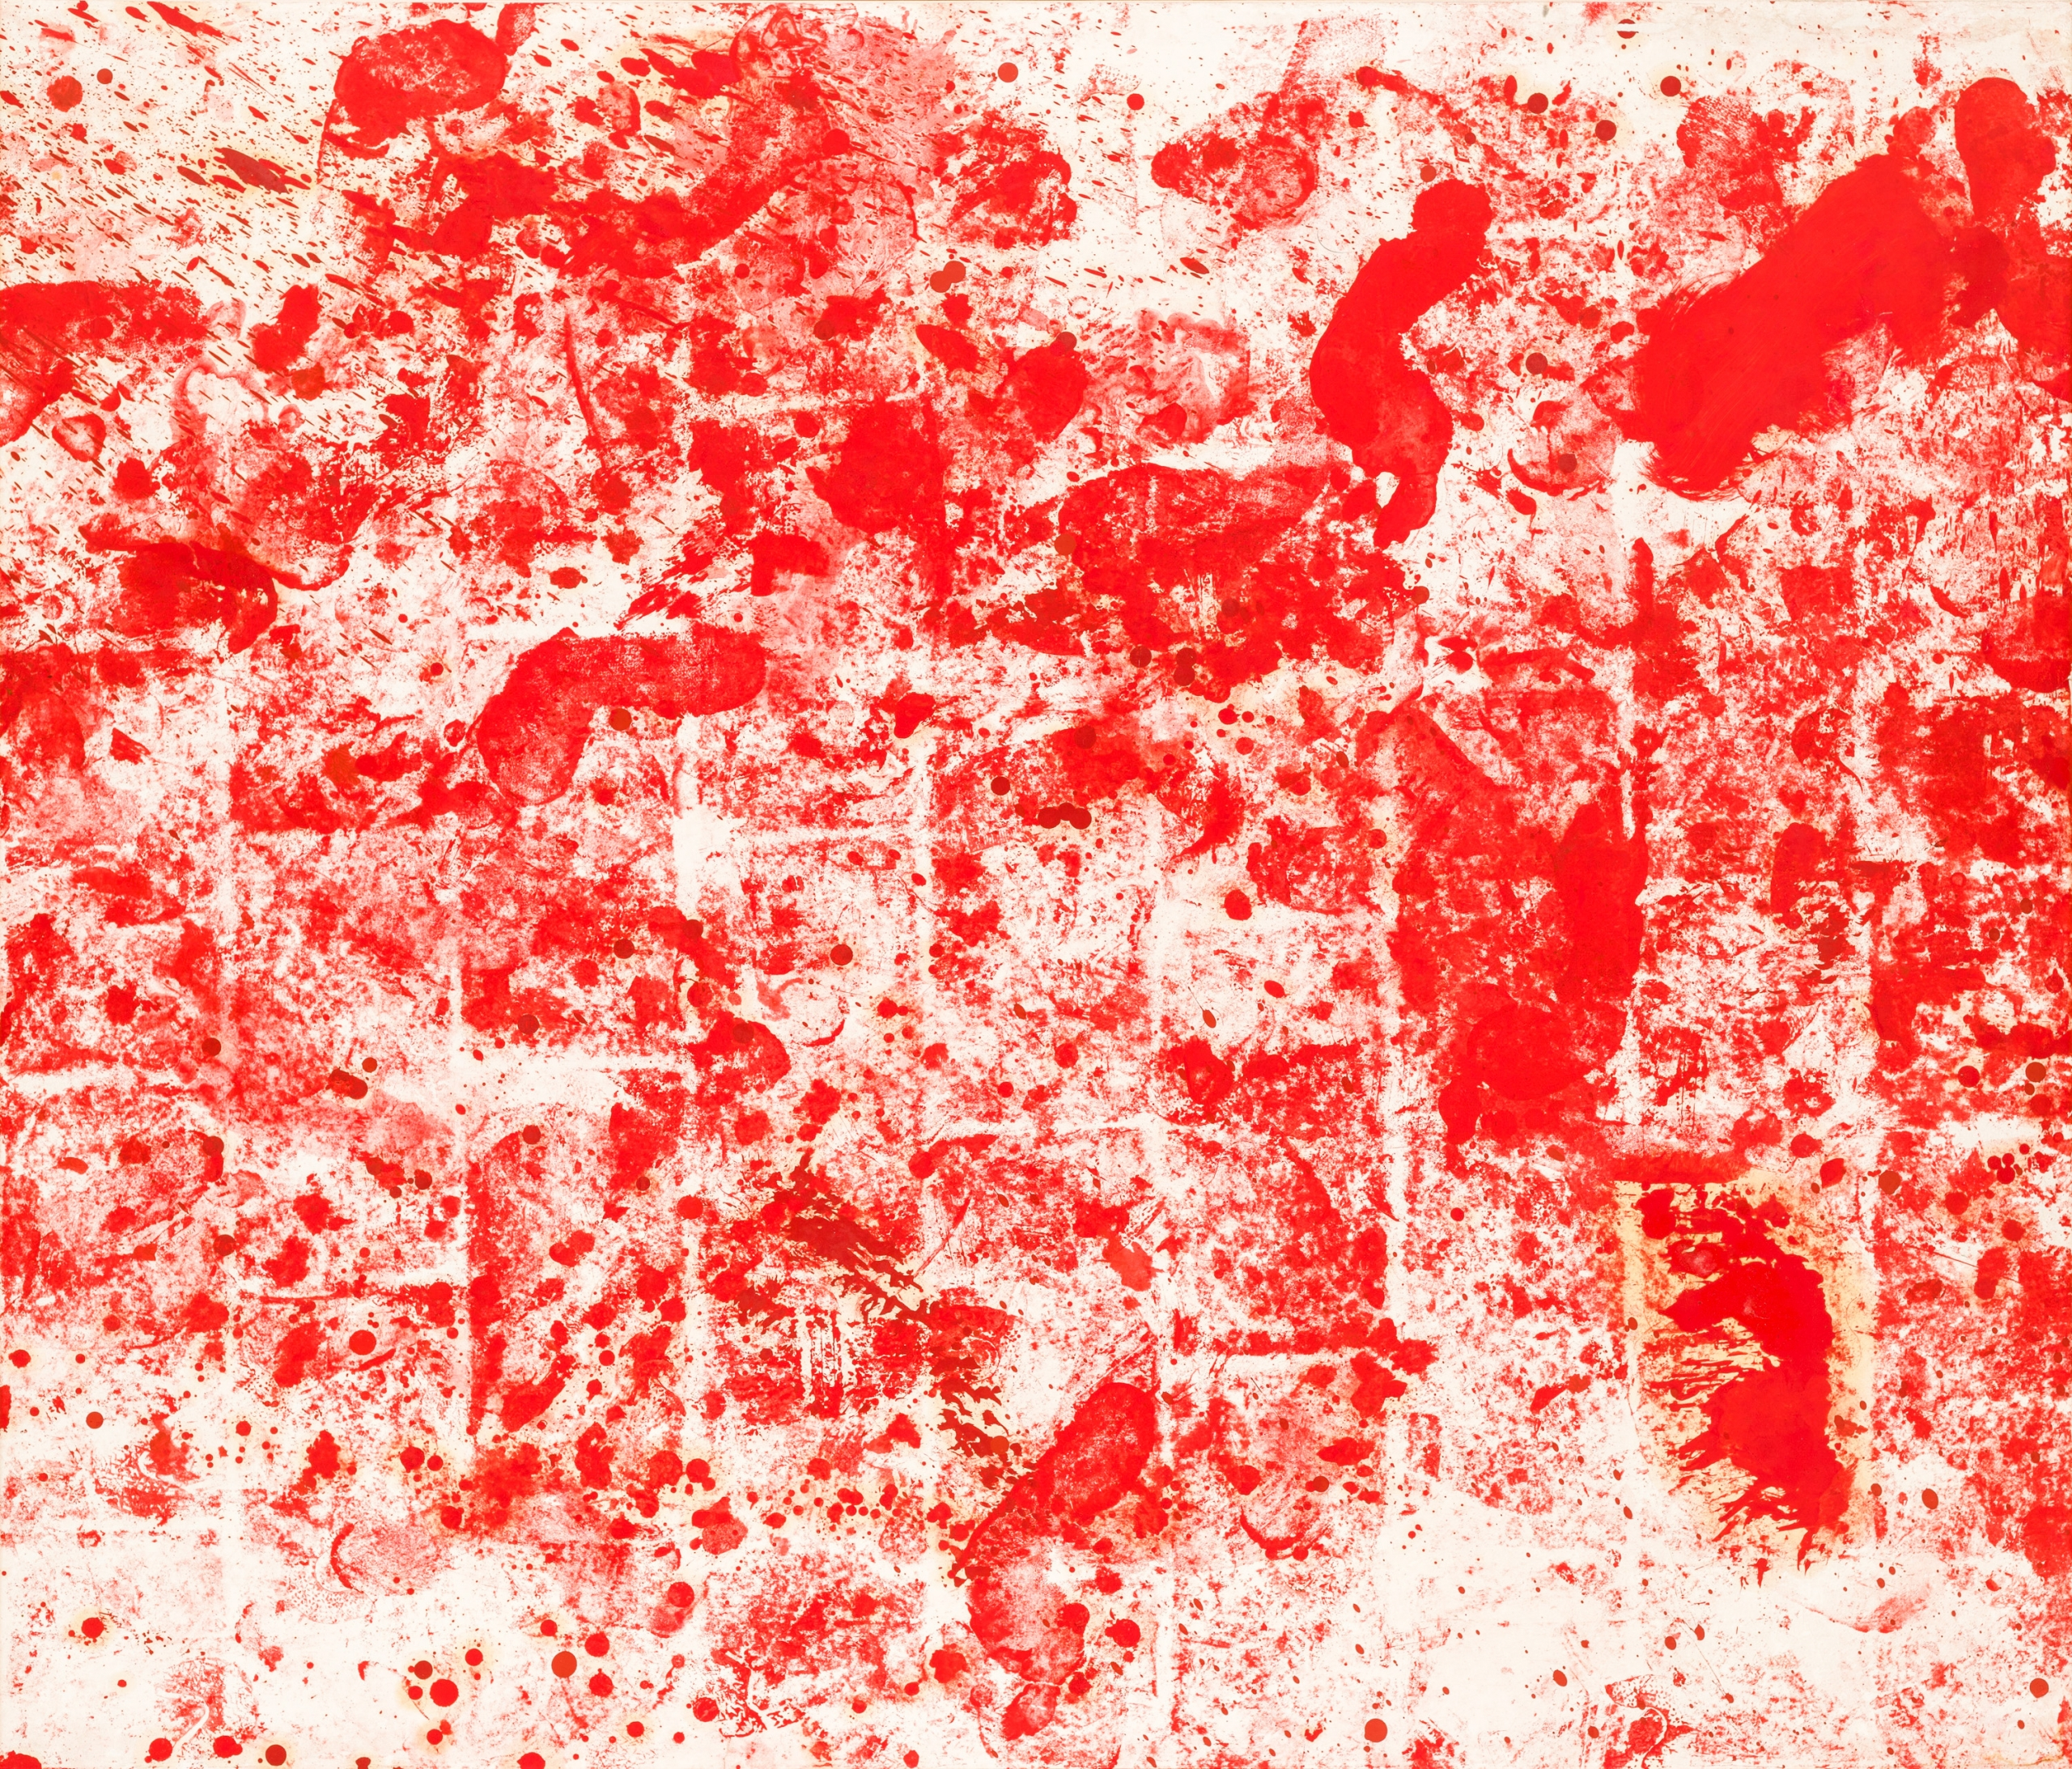 Hermann Nitsch, Ohne Titel (Bodentuch) / untitled (floorcloth)